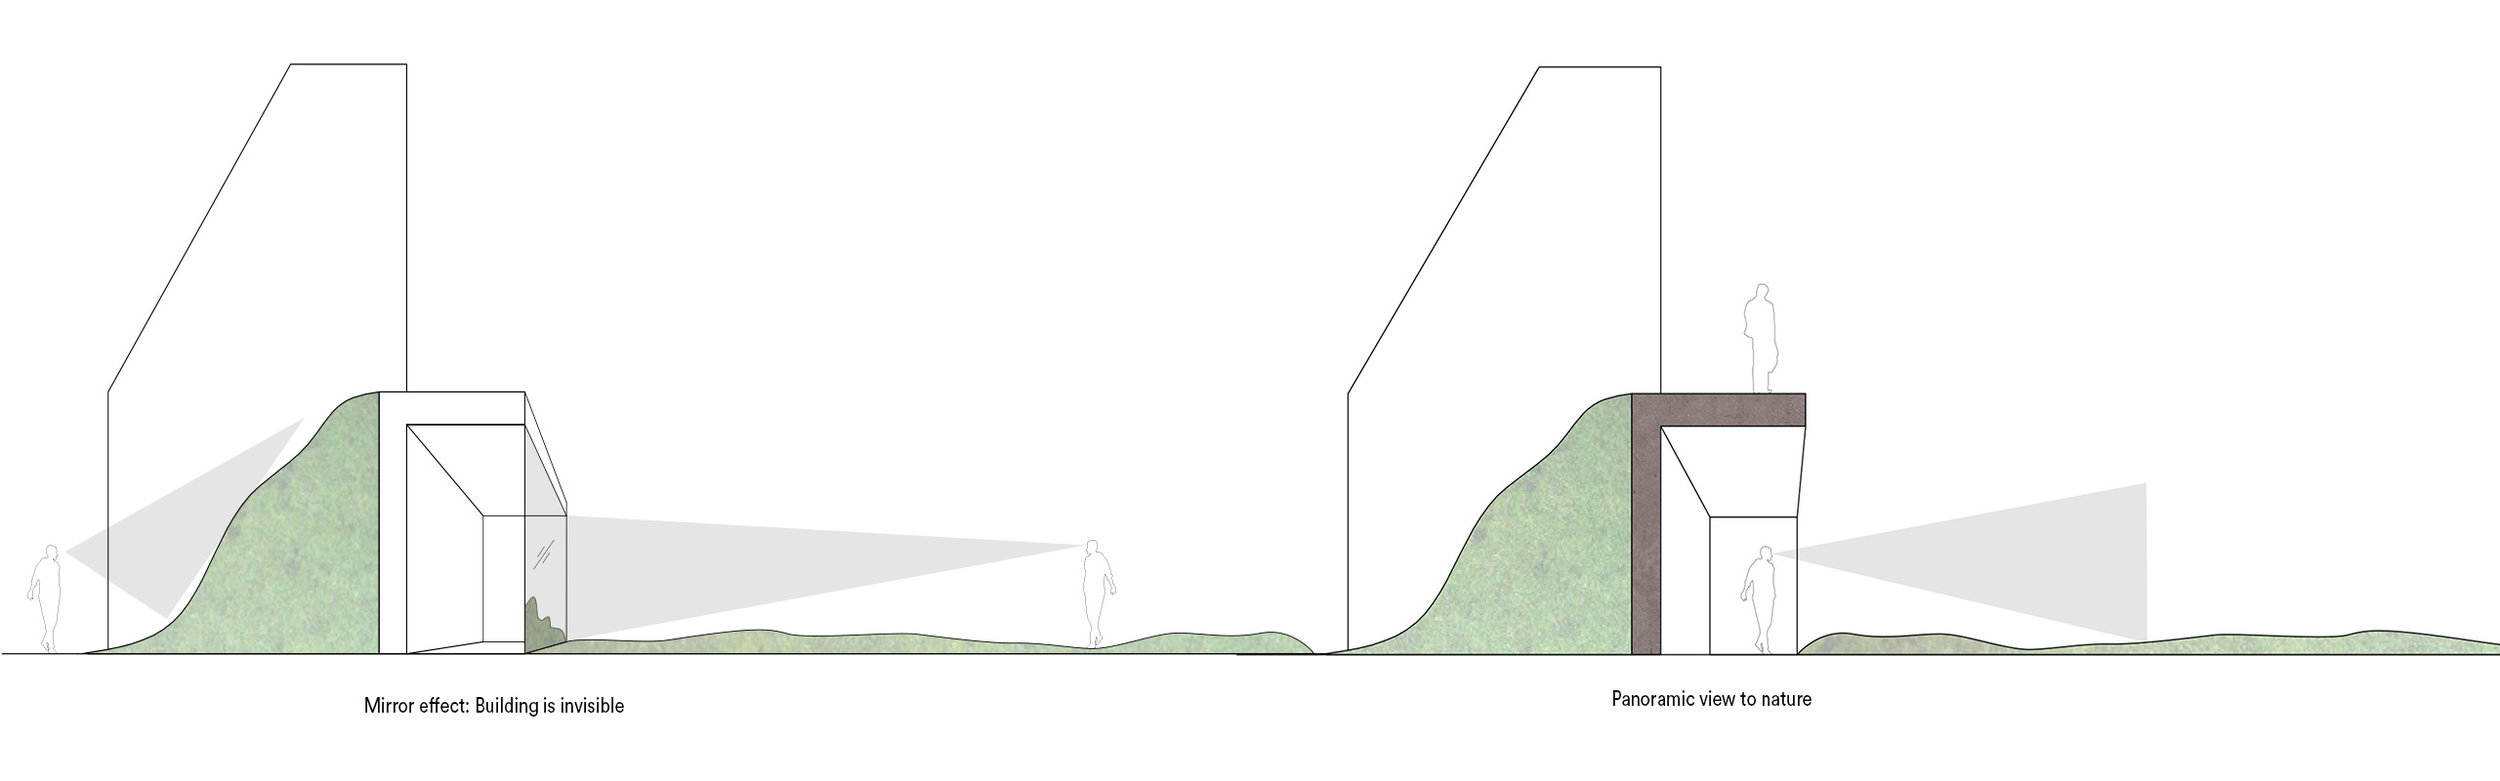 Sectional drawing of the Red Mountain Resort illustrating the visibility options from the inside and outside